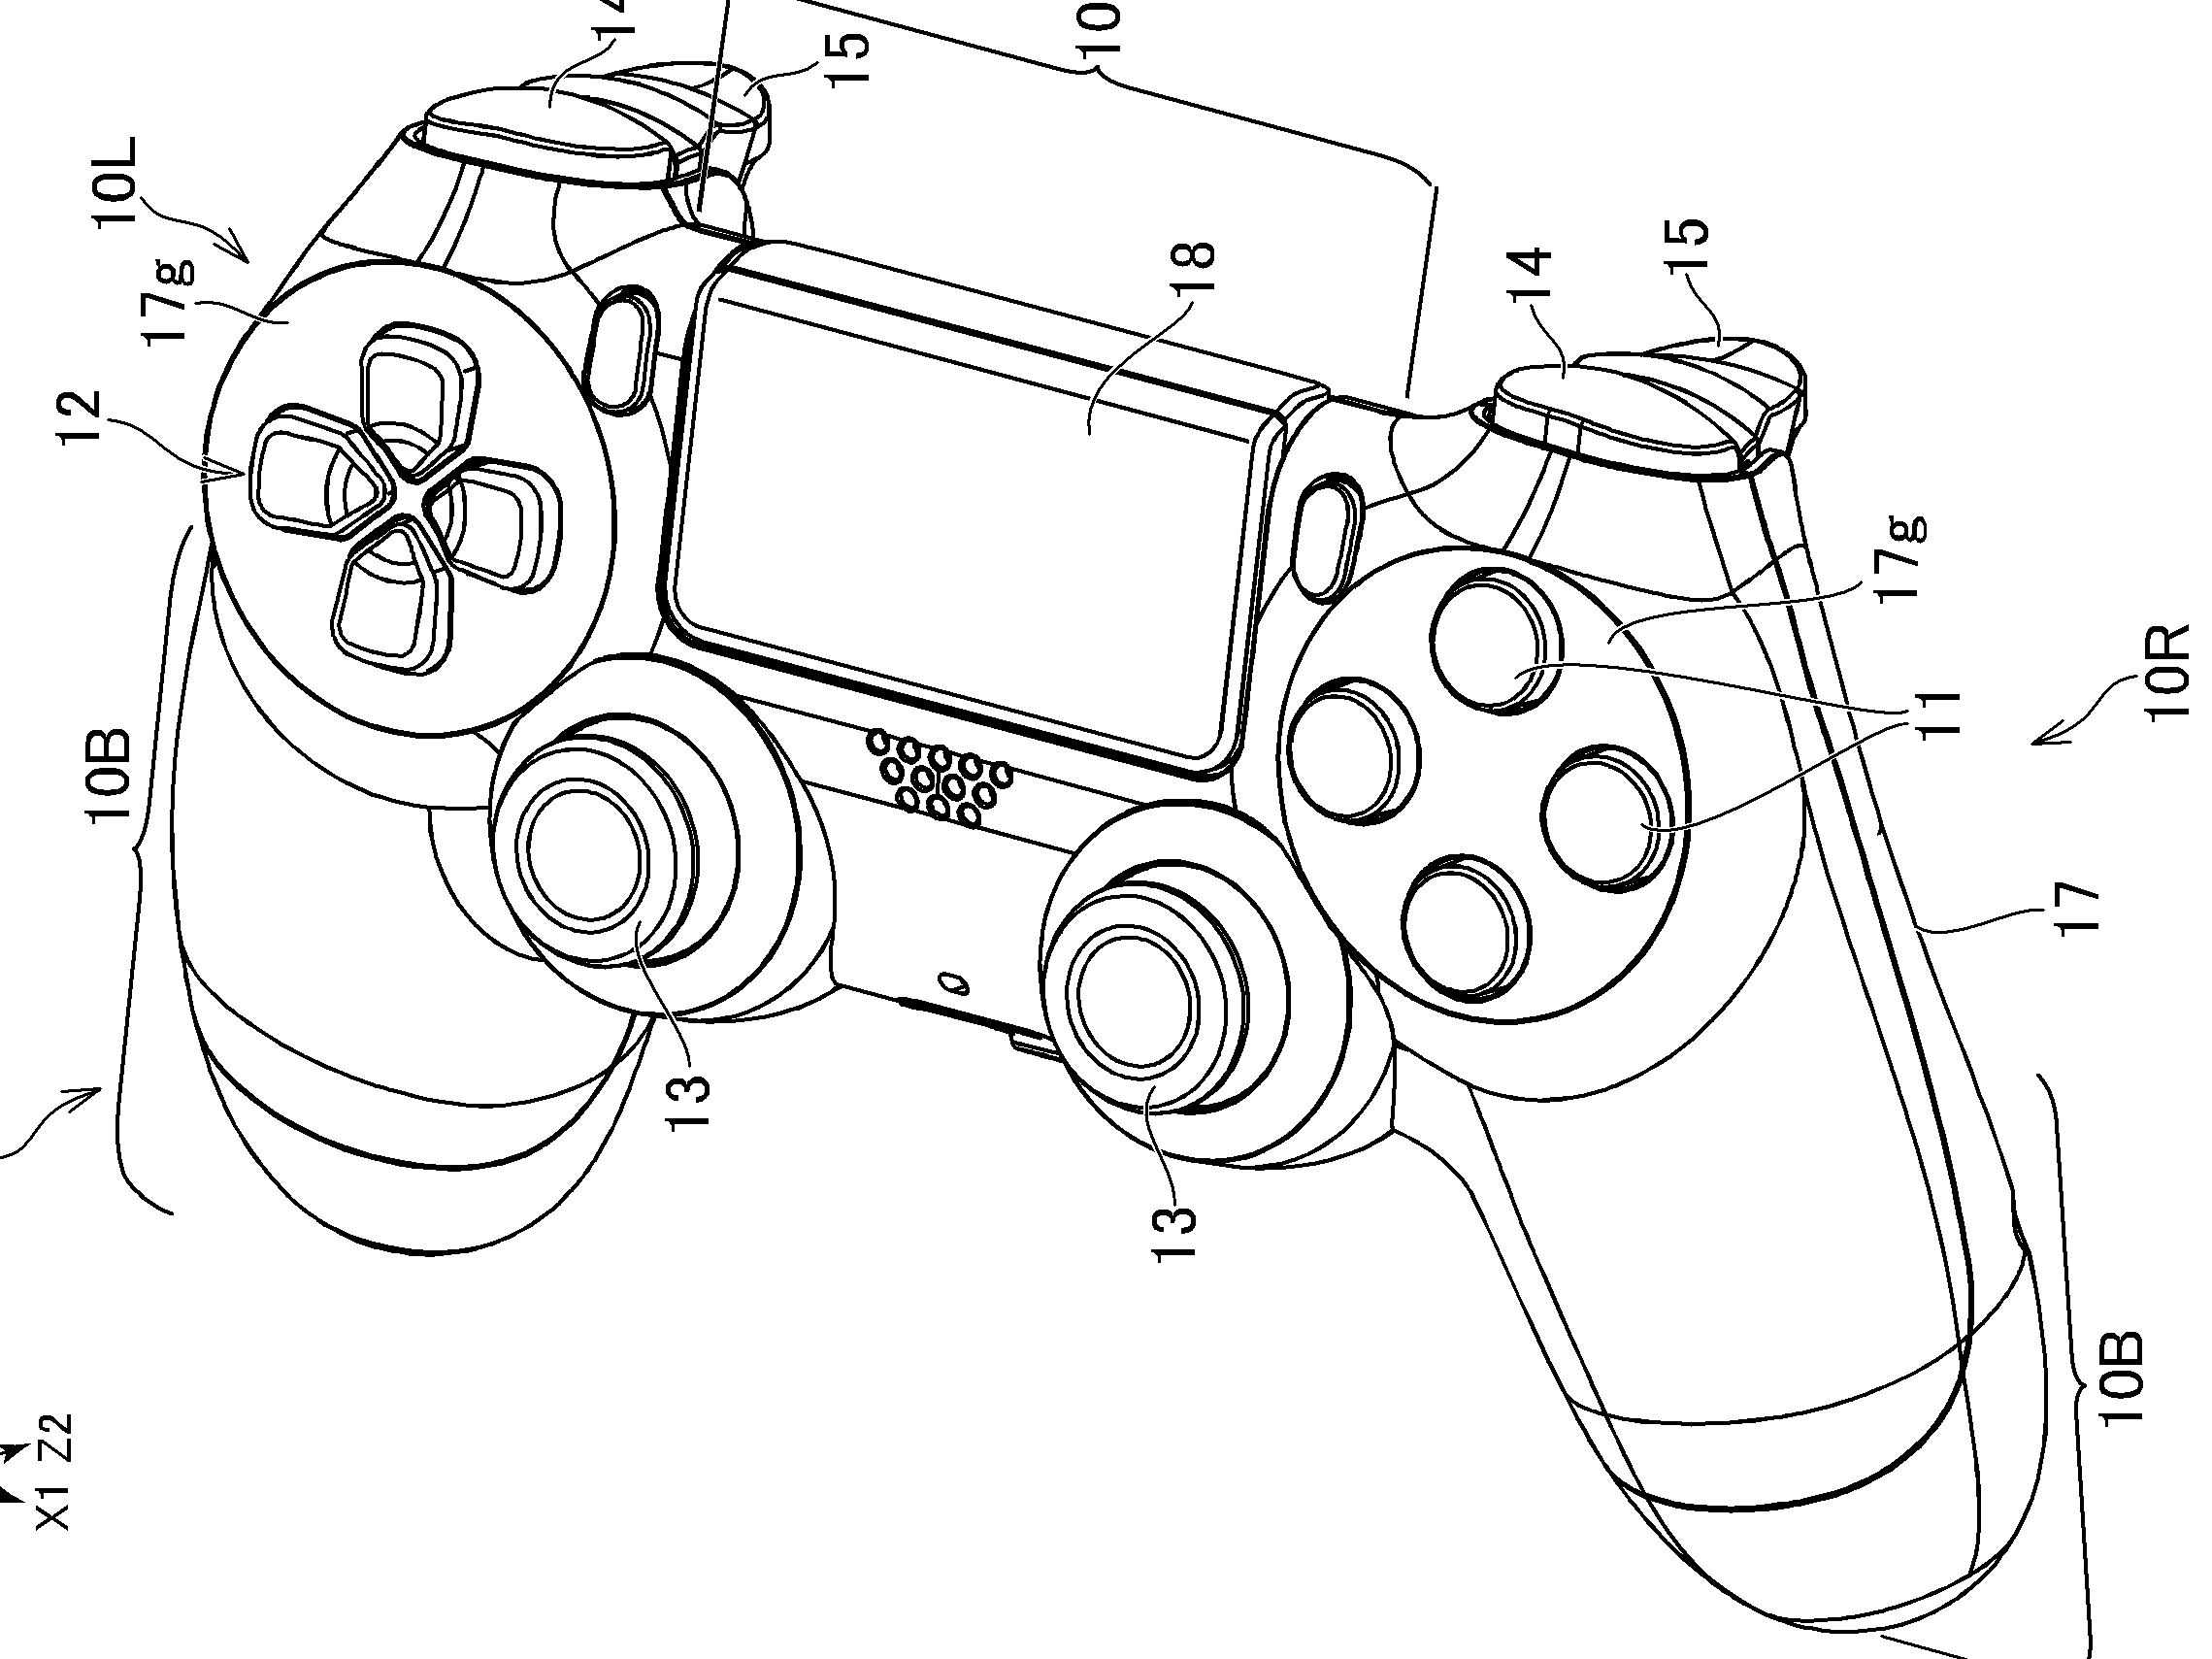 Sony Filed A Patent For A New Playstation Controller And